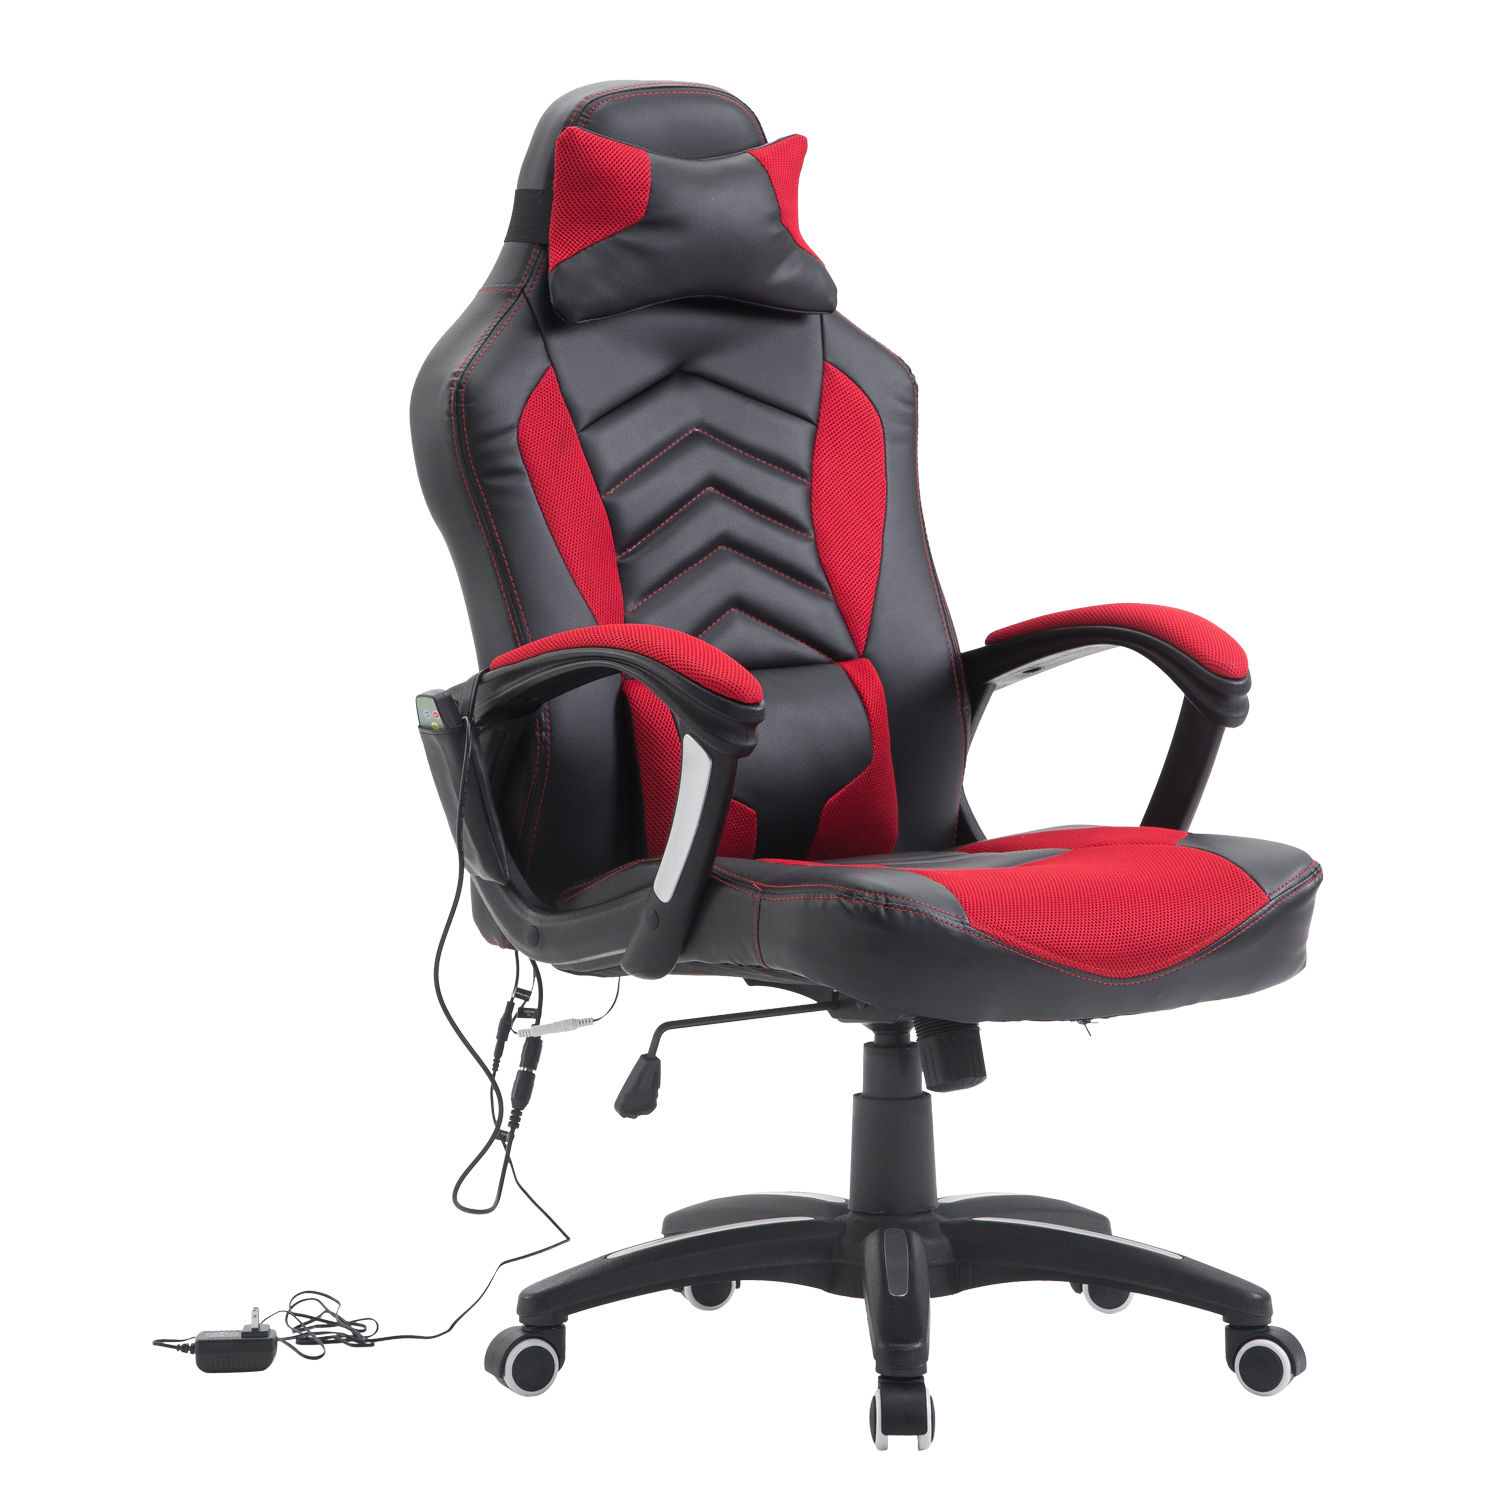 HomCom Modern Ergonomic PU Leather Heated Vibrating Massage Office Chair - Red